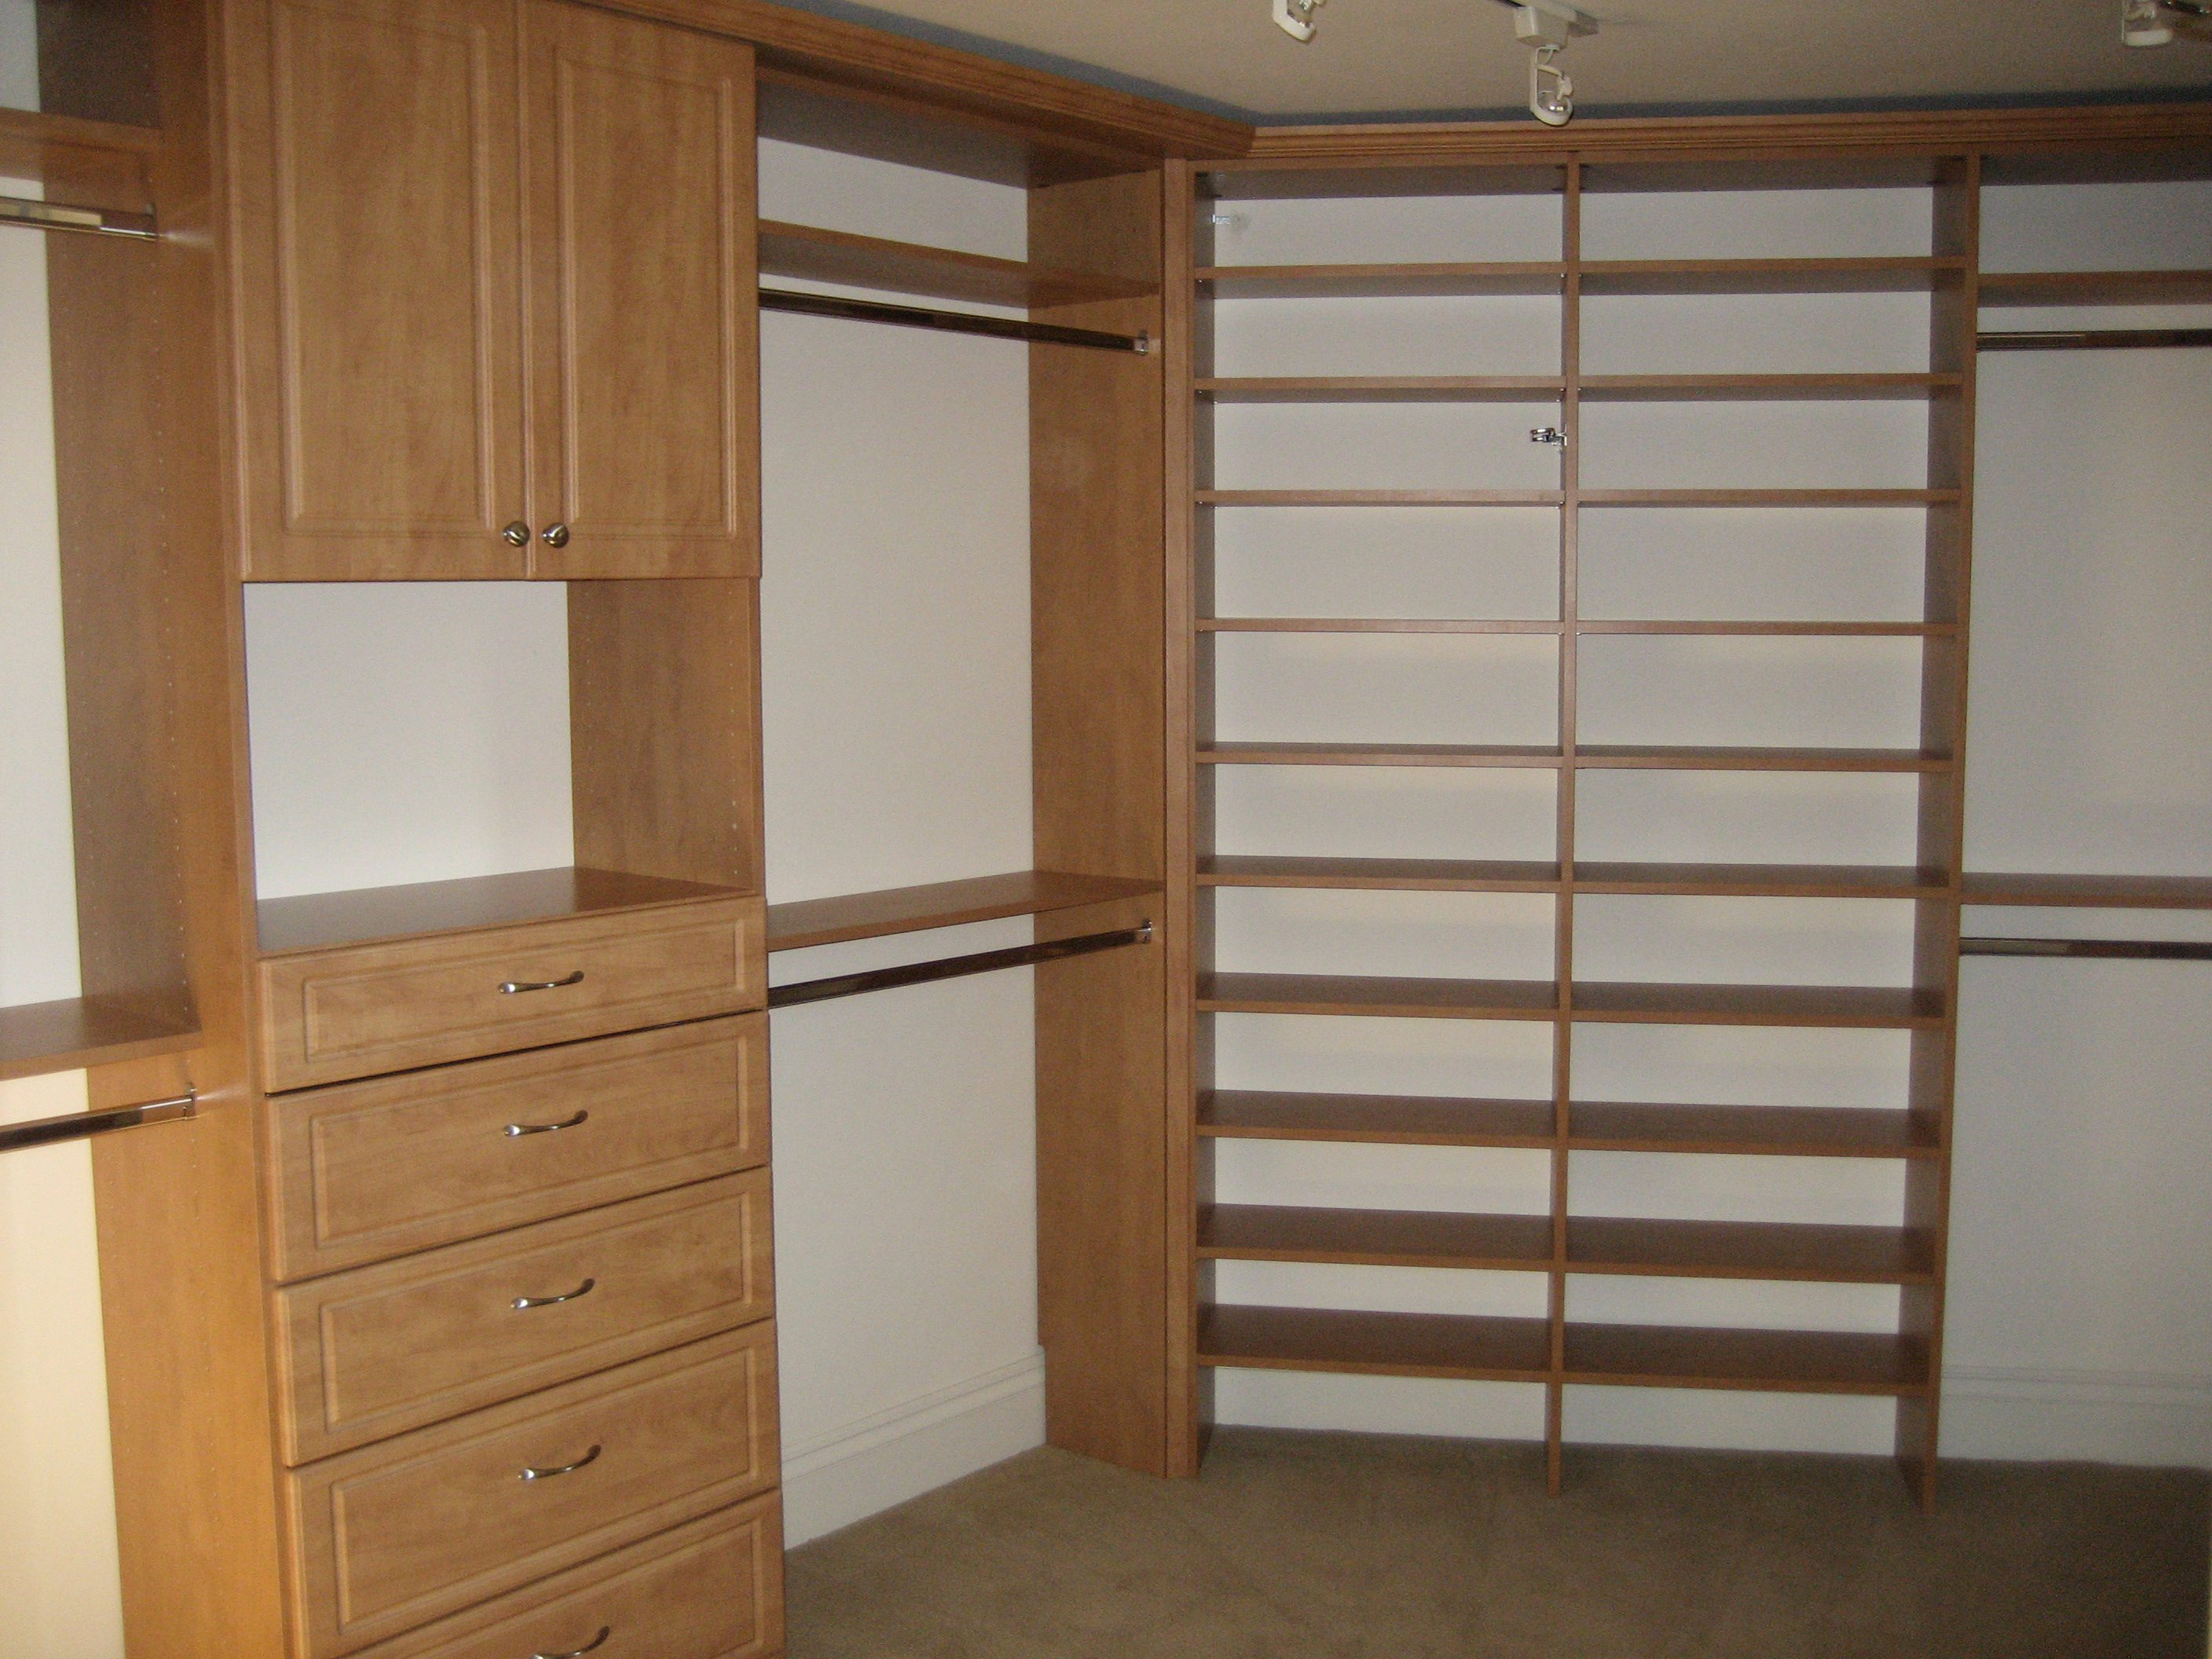 in with chest hanging can storage you size of stores premade design bins wood home wardrobe for organizer closed shelves use systems full organization ideas custom open closets the closet kitchen drawers under